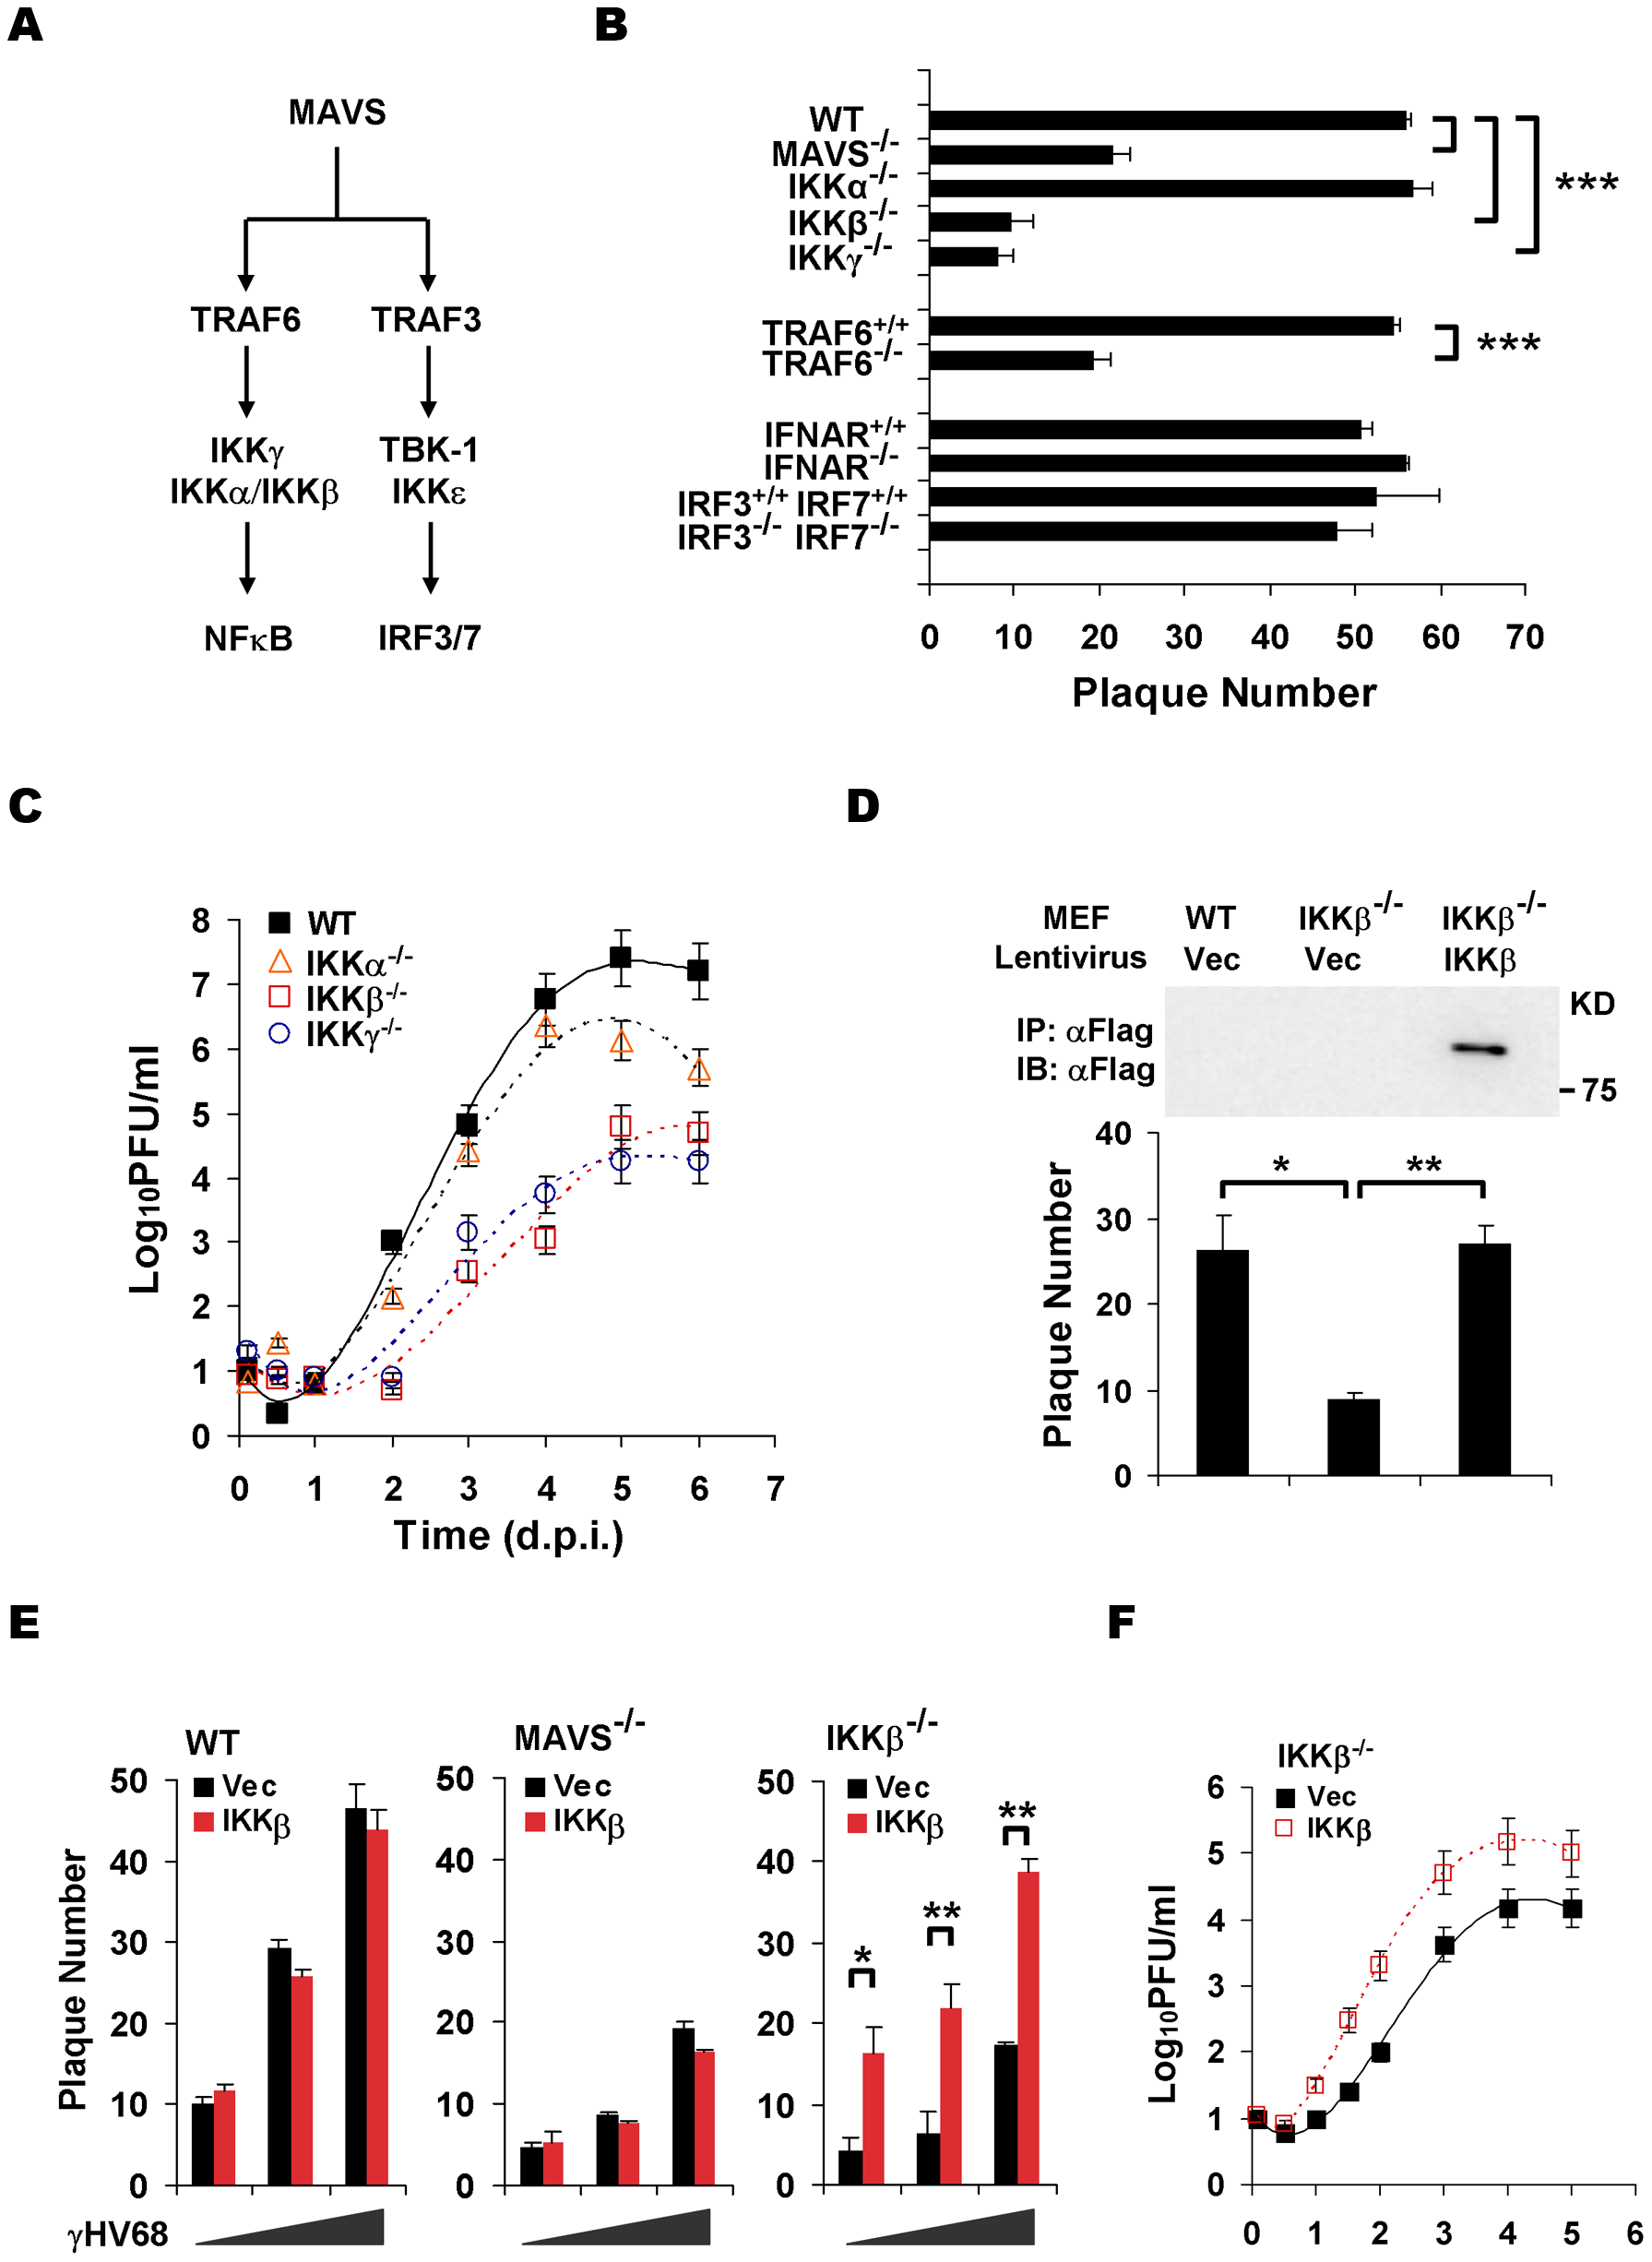 The MAVS-IKKβ pathway is necessary for efficient γHV68 lytic replication <i>ex vivo</i>.